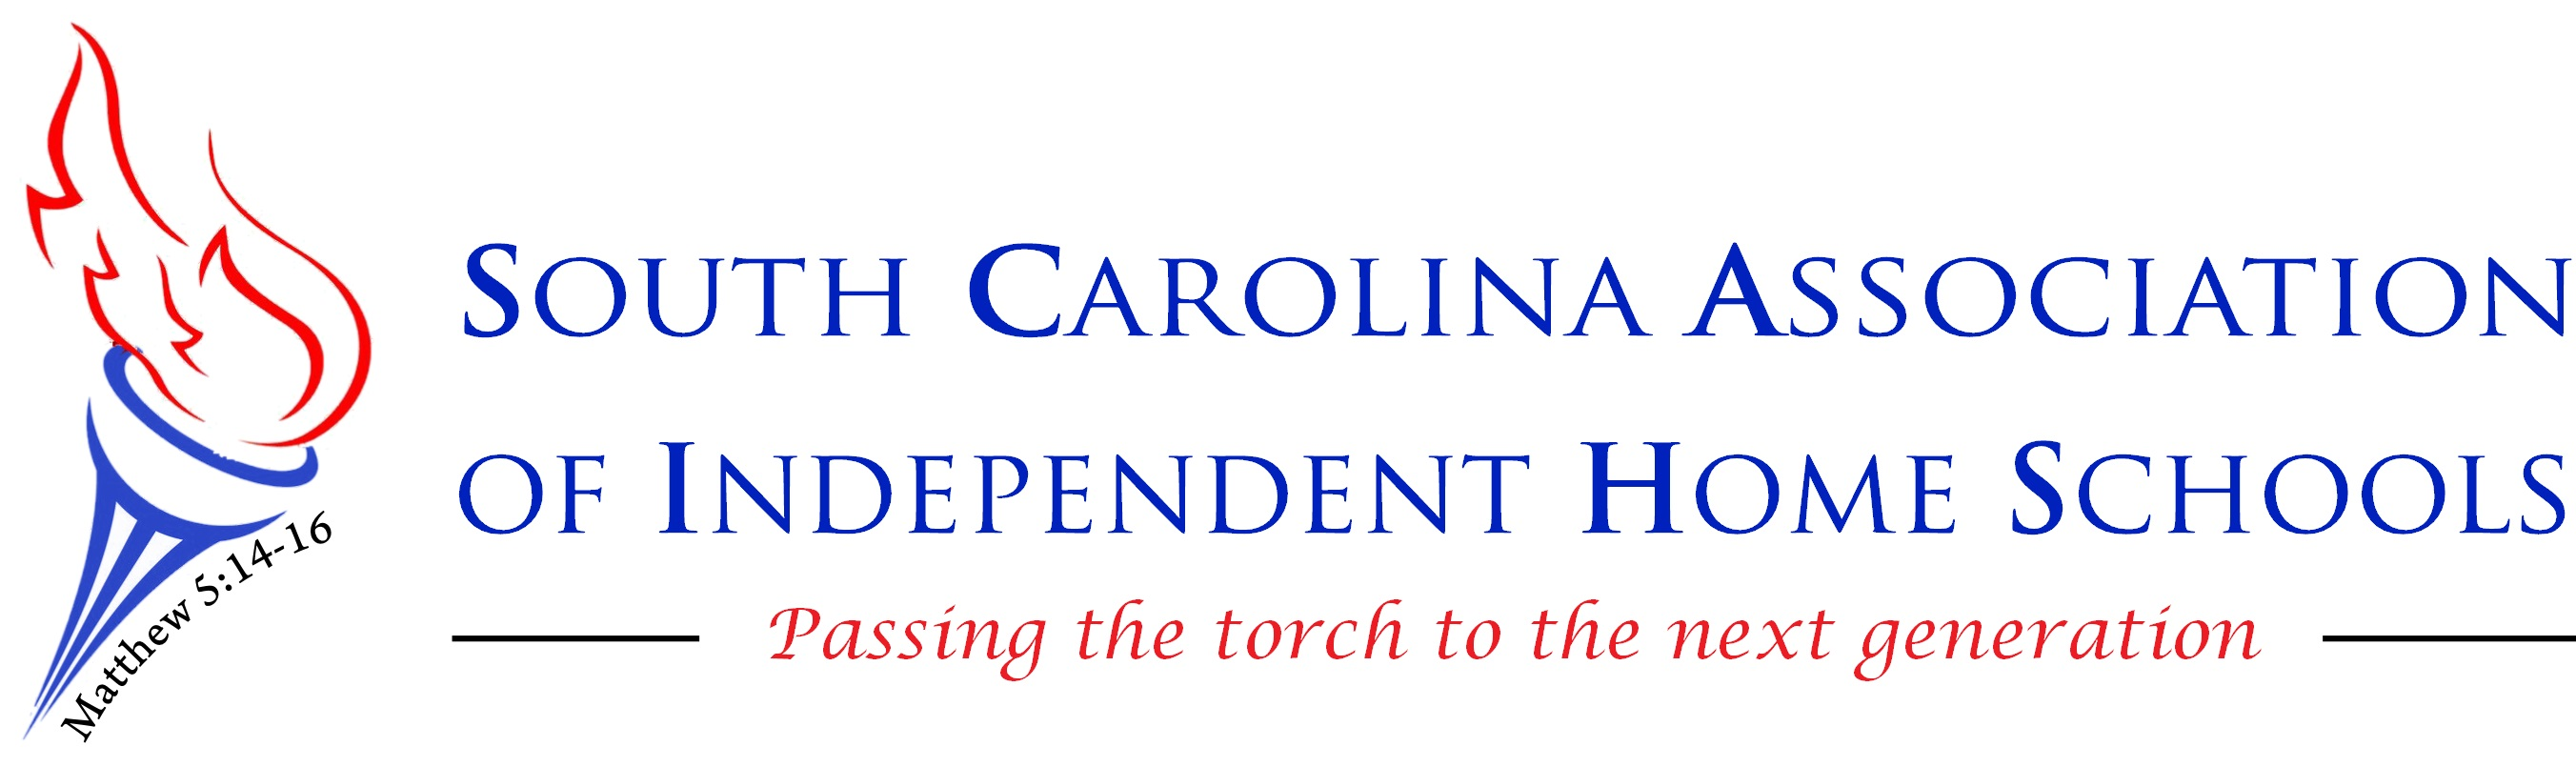 South Carolina Association of Independent Home Schools - SCAIHS